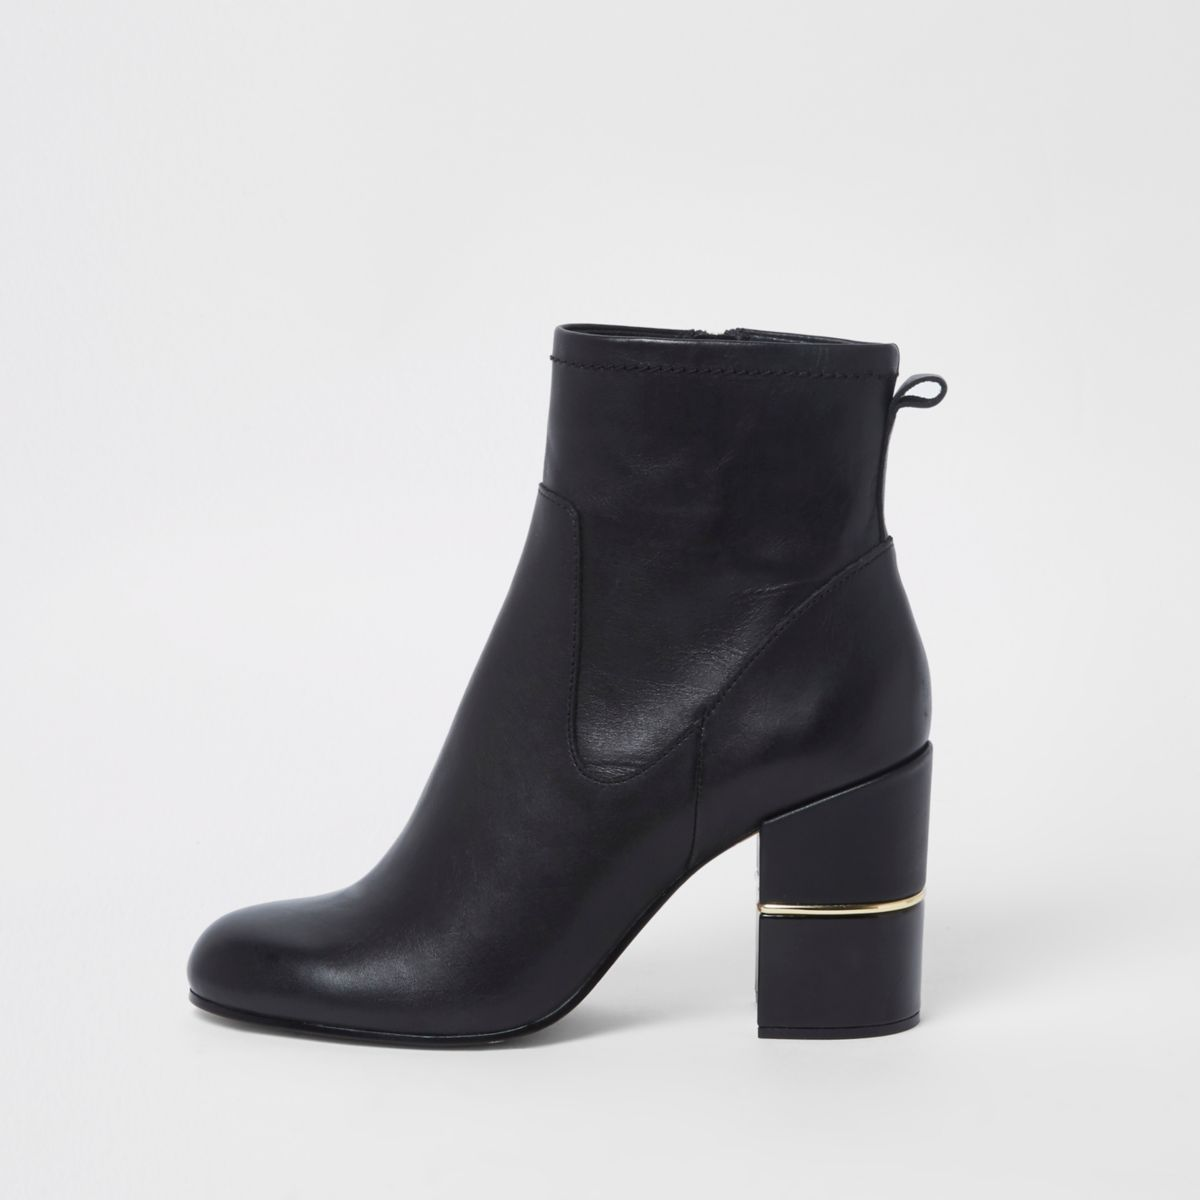 black leather block heel heel ankle boots boots shoes